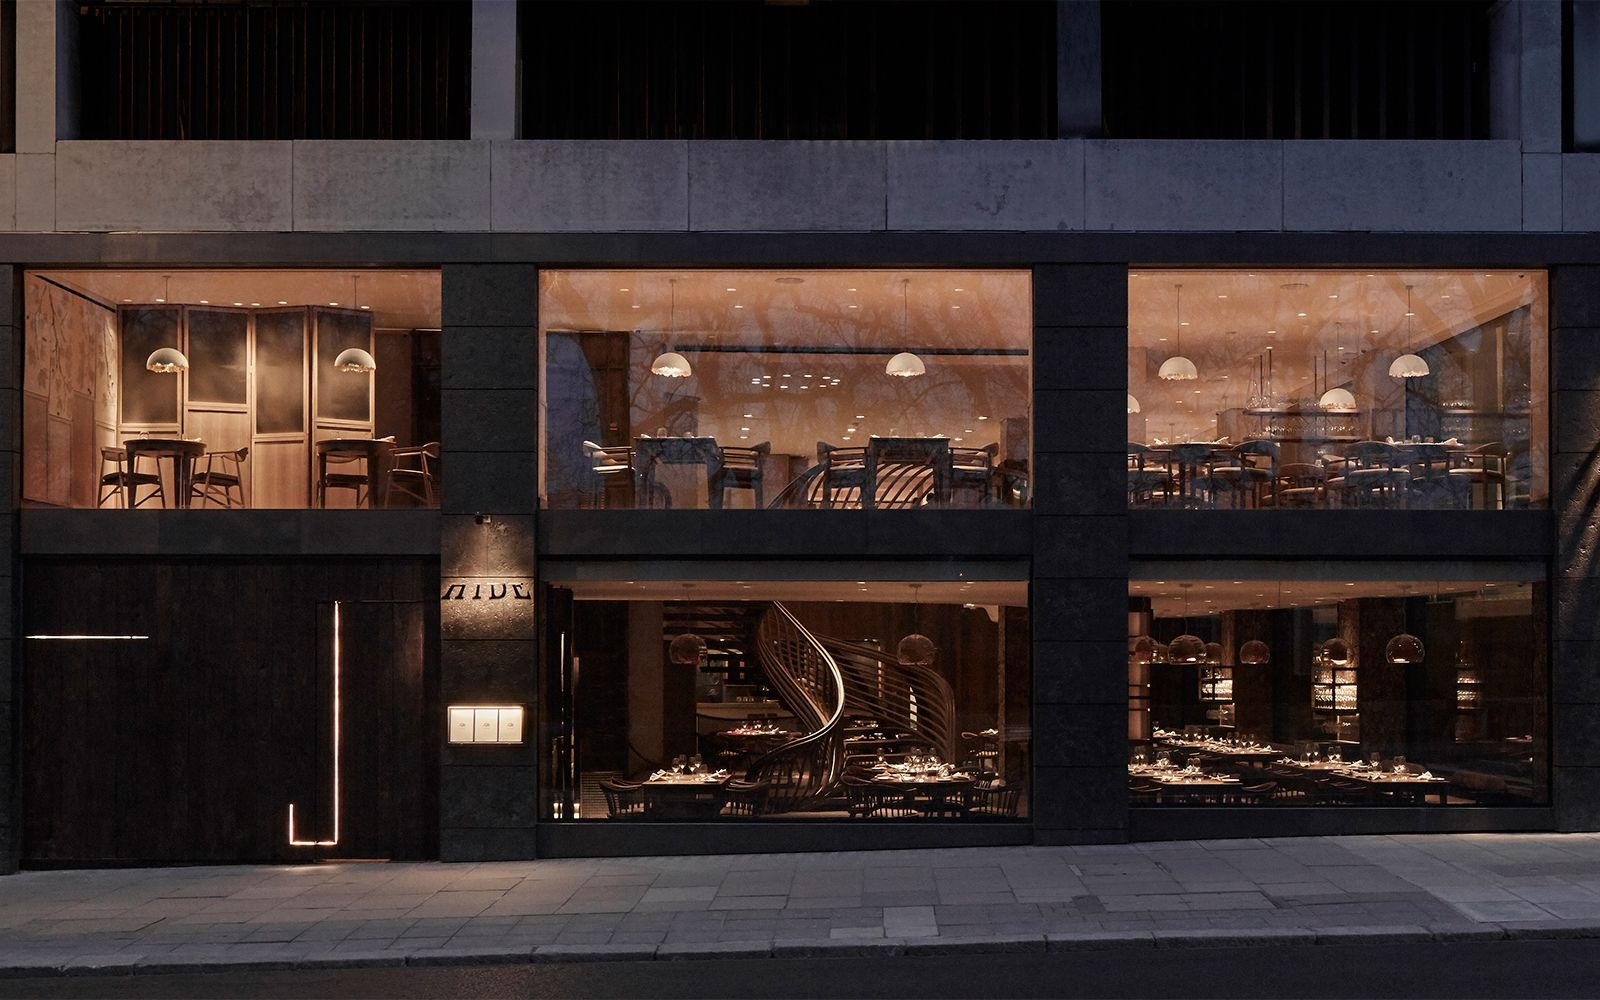 Hide restaurant, Ollie Dabbous, London